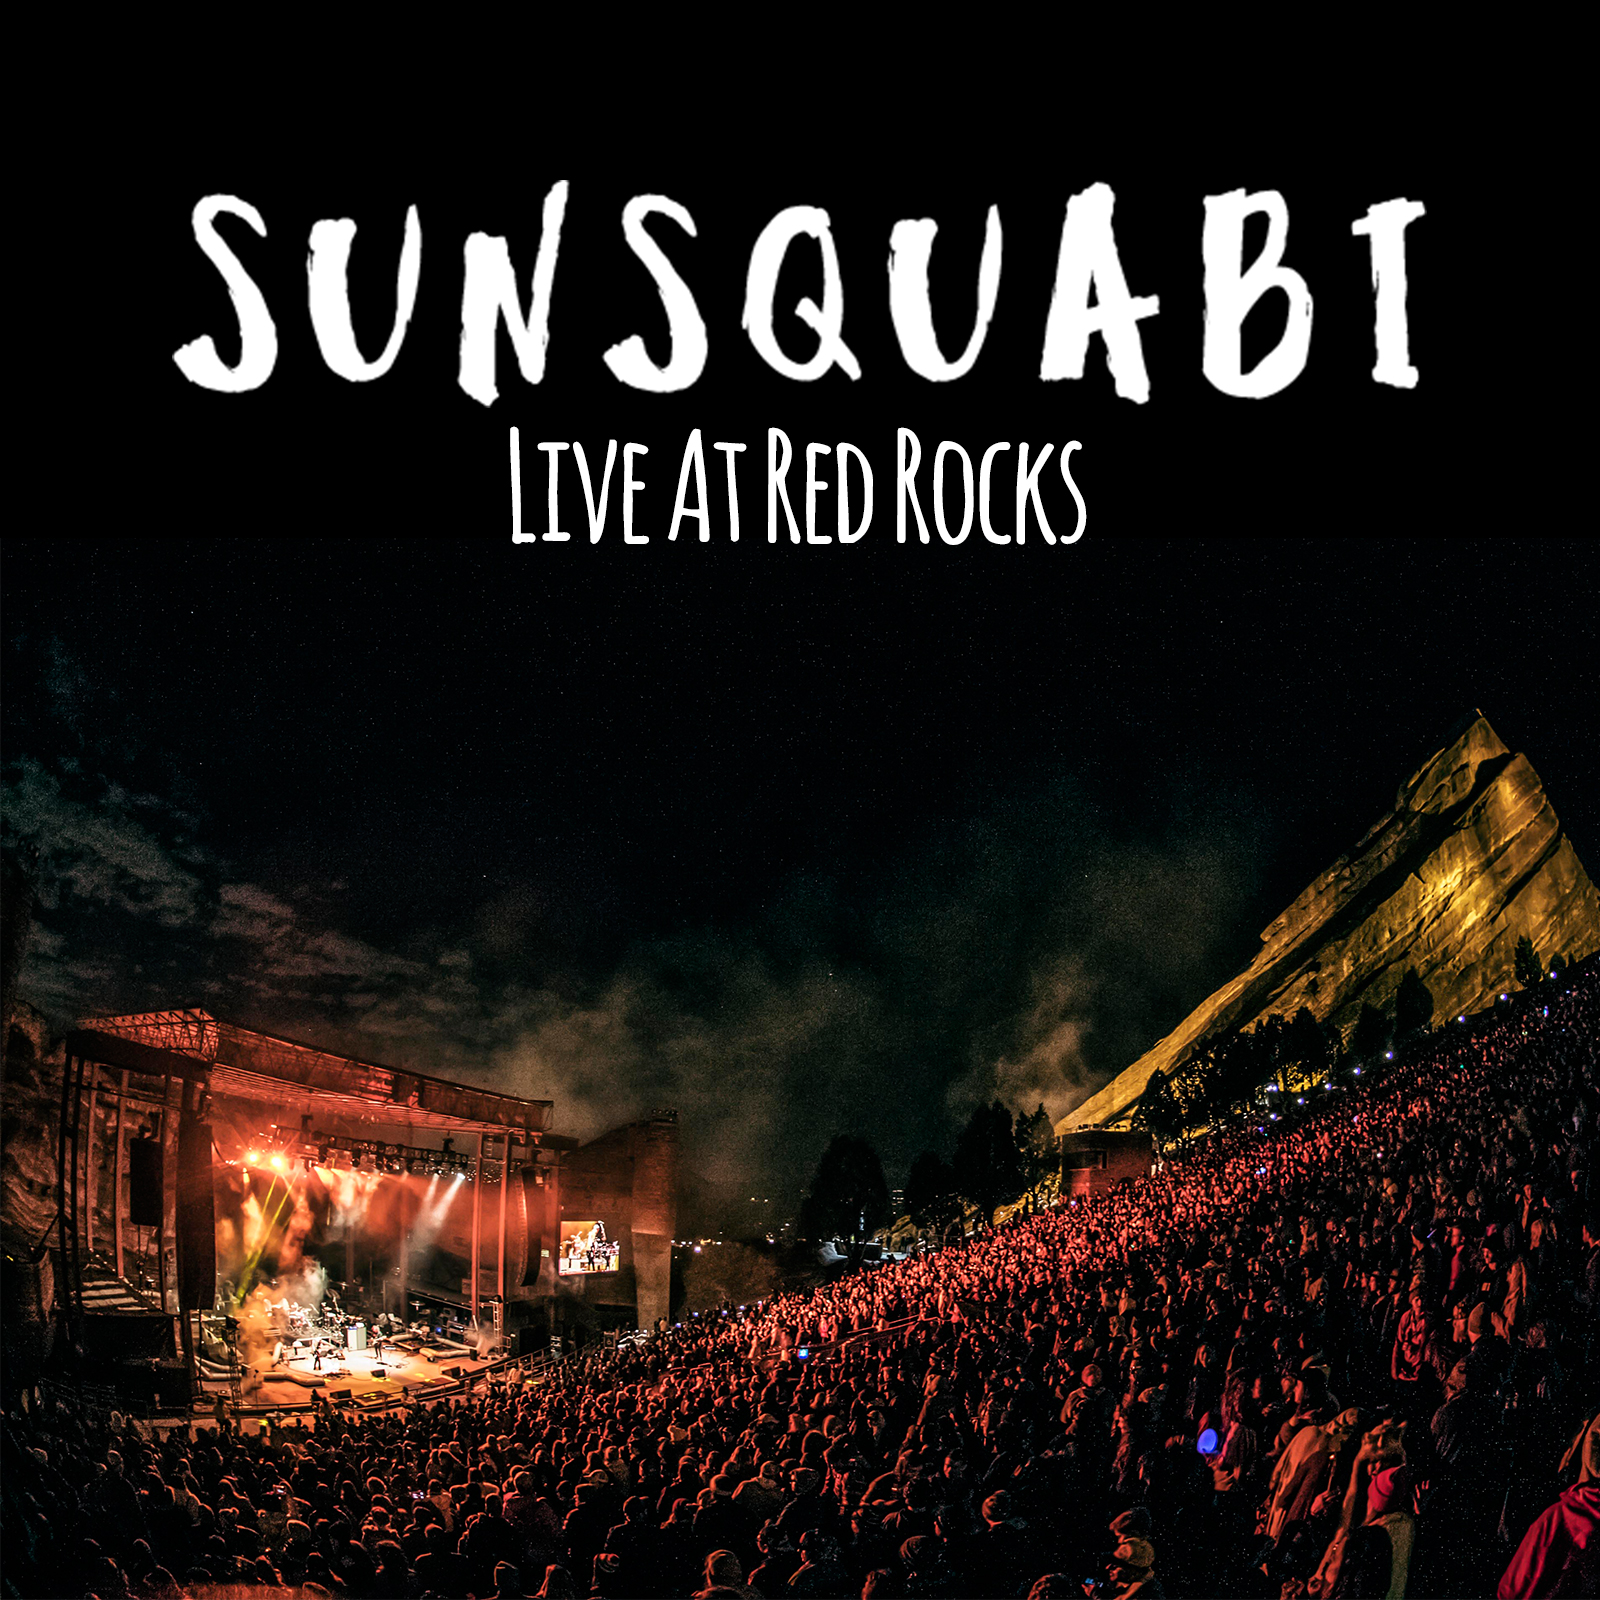 Live at Red Rocks is available now! - Listen to the complete show on all music platforms